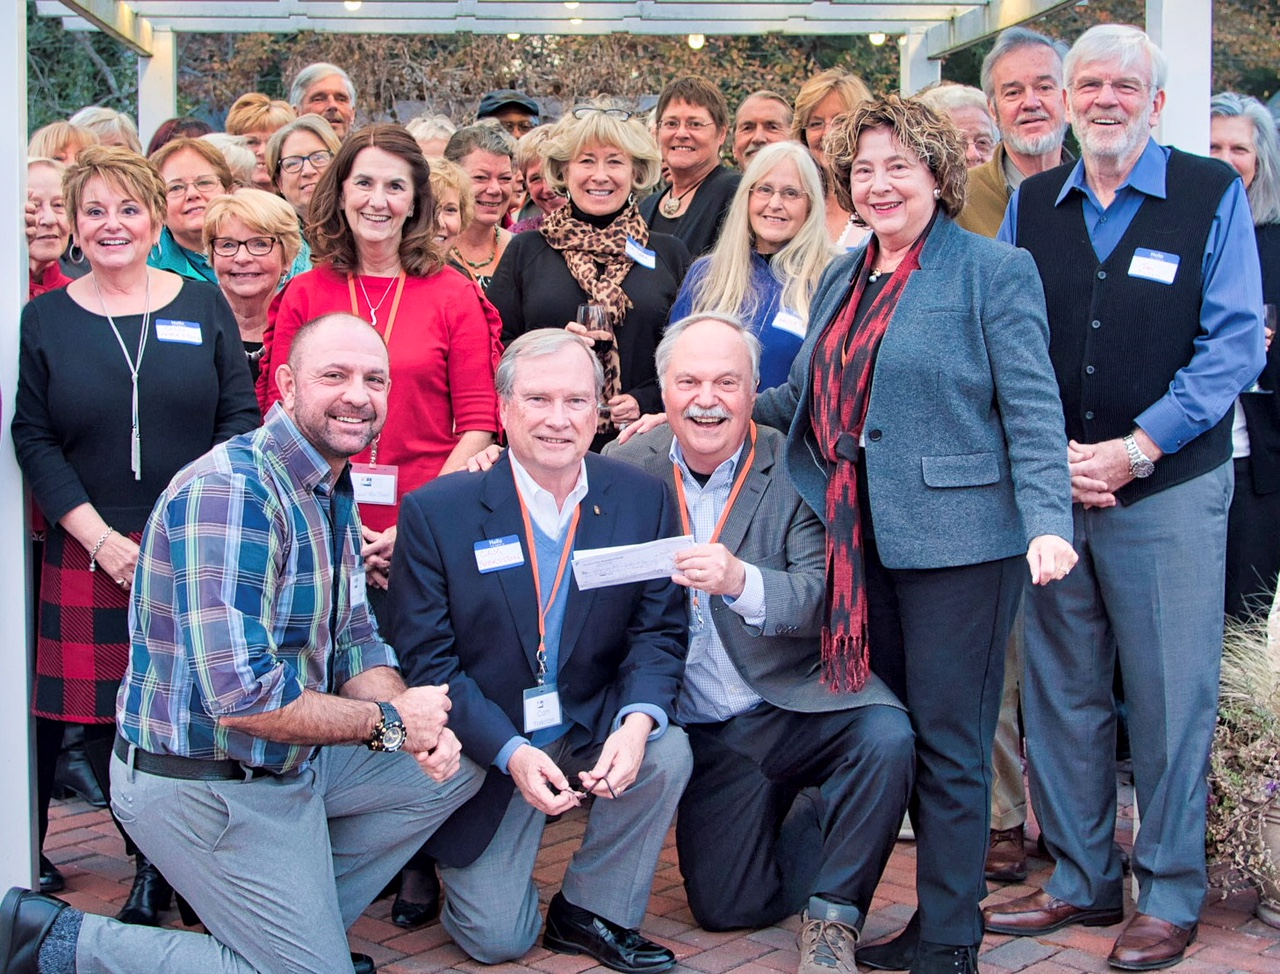 Many of our volunteers at the 2017 Delaware Botanic Gardens Volunteer Appreciation dinner stand behind Gregg Tepper, Cam Yorkston, Ray Sander and Sheryl Swed who are displaying the grant check from the Ellice & Rosa McDonald Foundation.